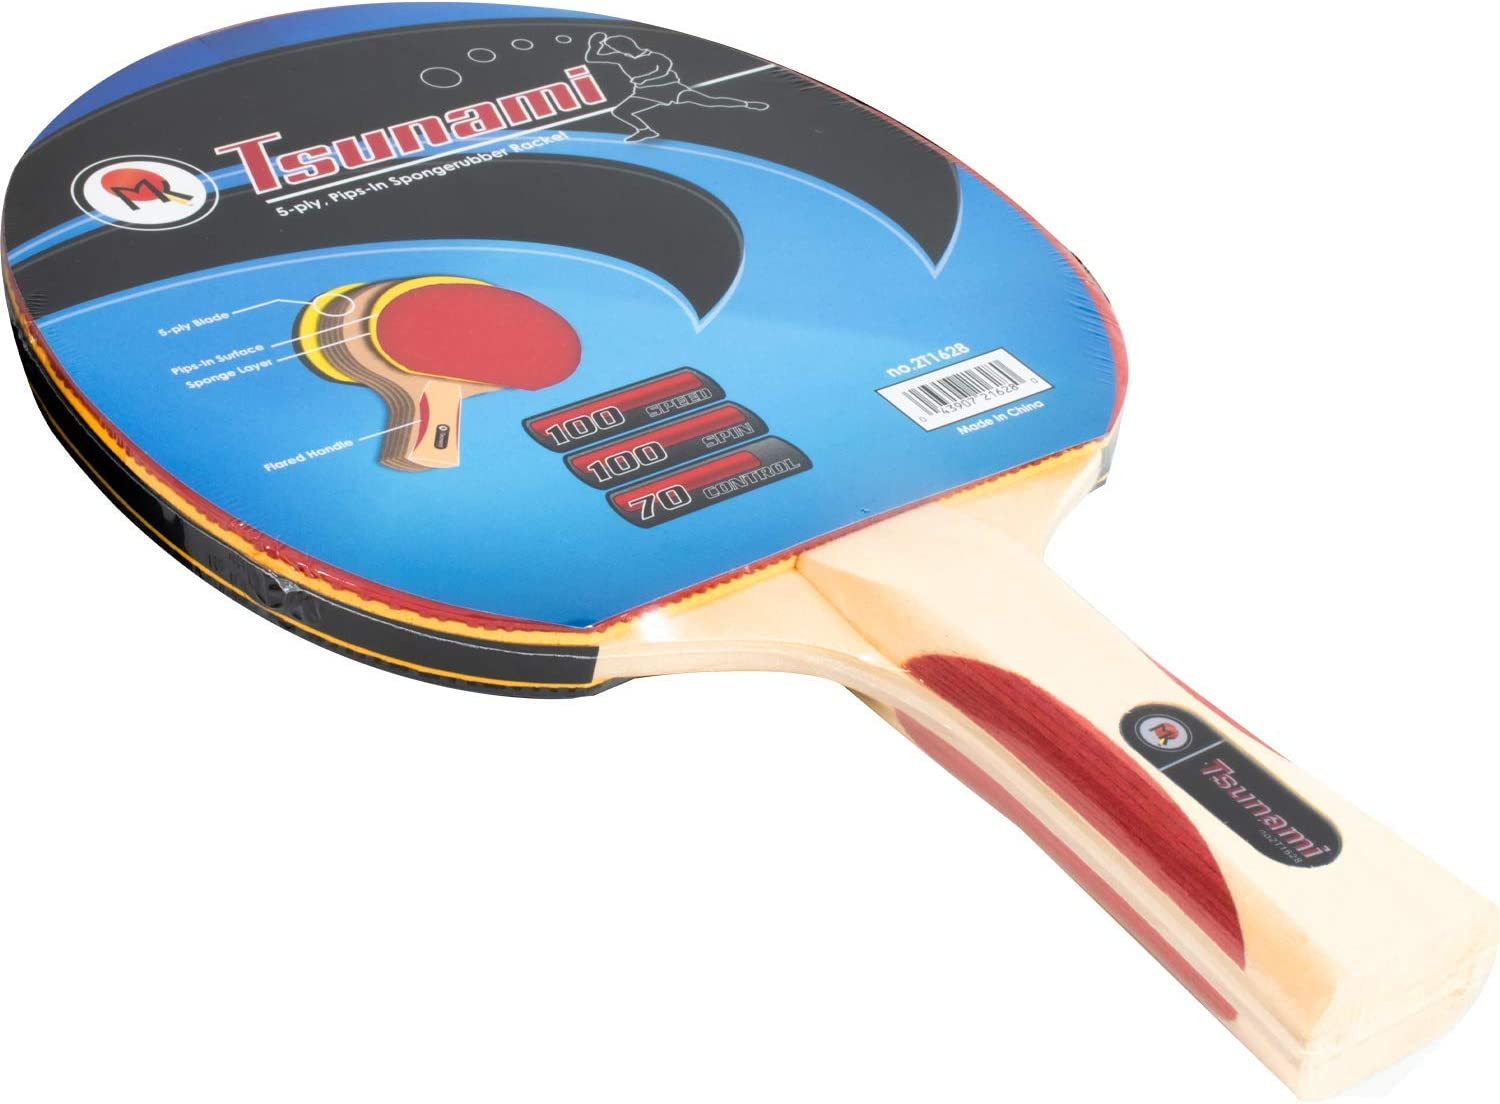 Martin Kilpatrick Tsunami Ping Pong Tulsa Mall Paddle Rubber - On Lowest price challenge Pips-In B